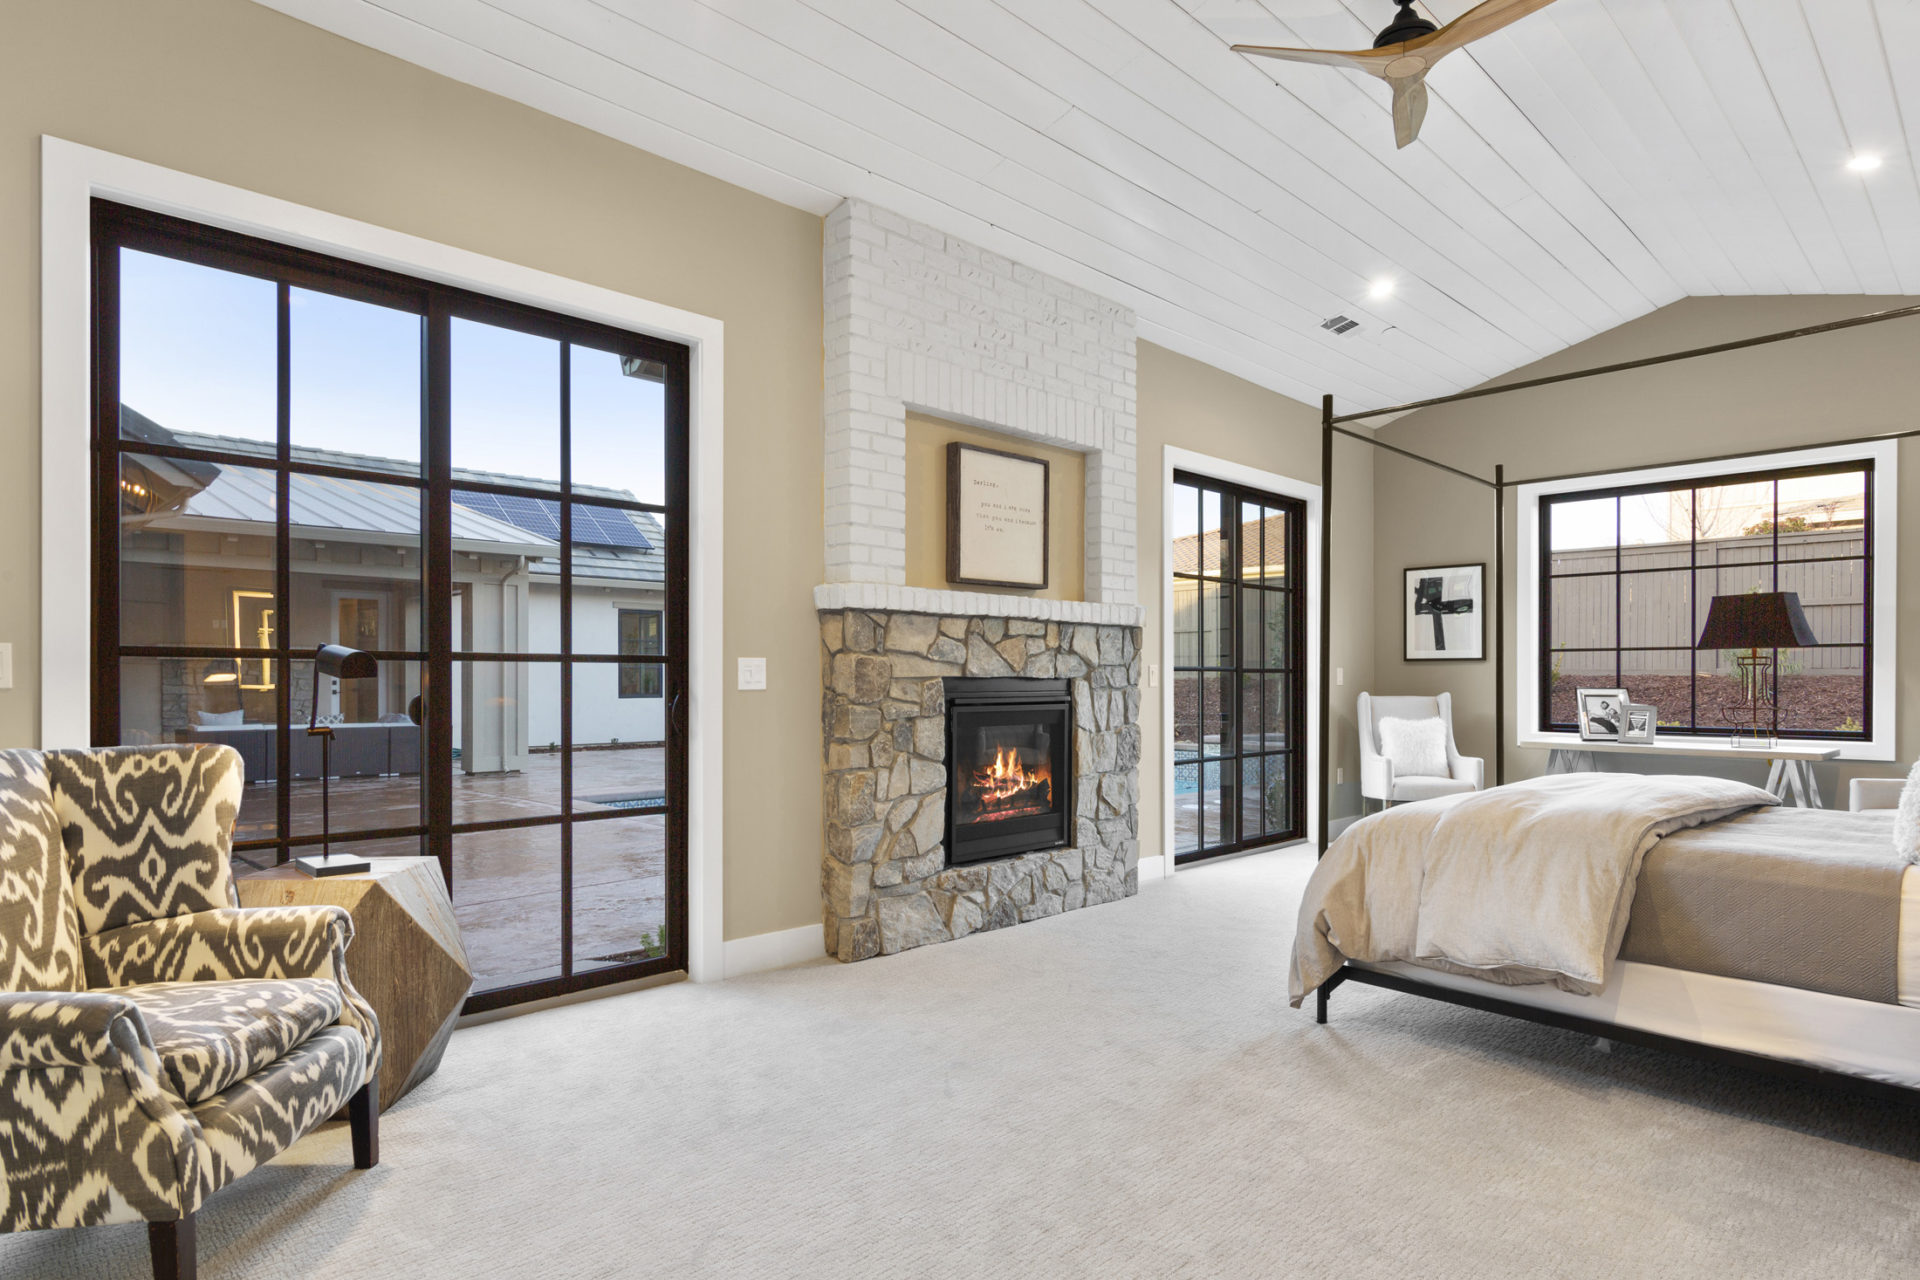 TailorMade Homes for sale in El Dorado Hills - Photographed by TiAmo Images